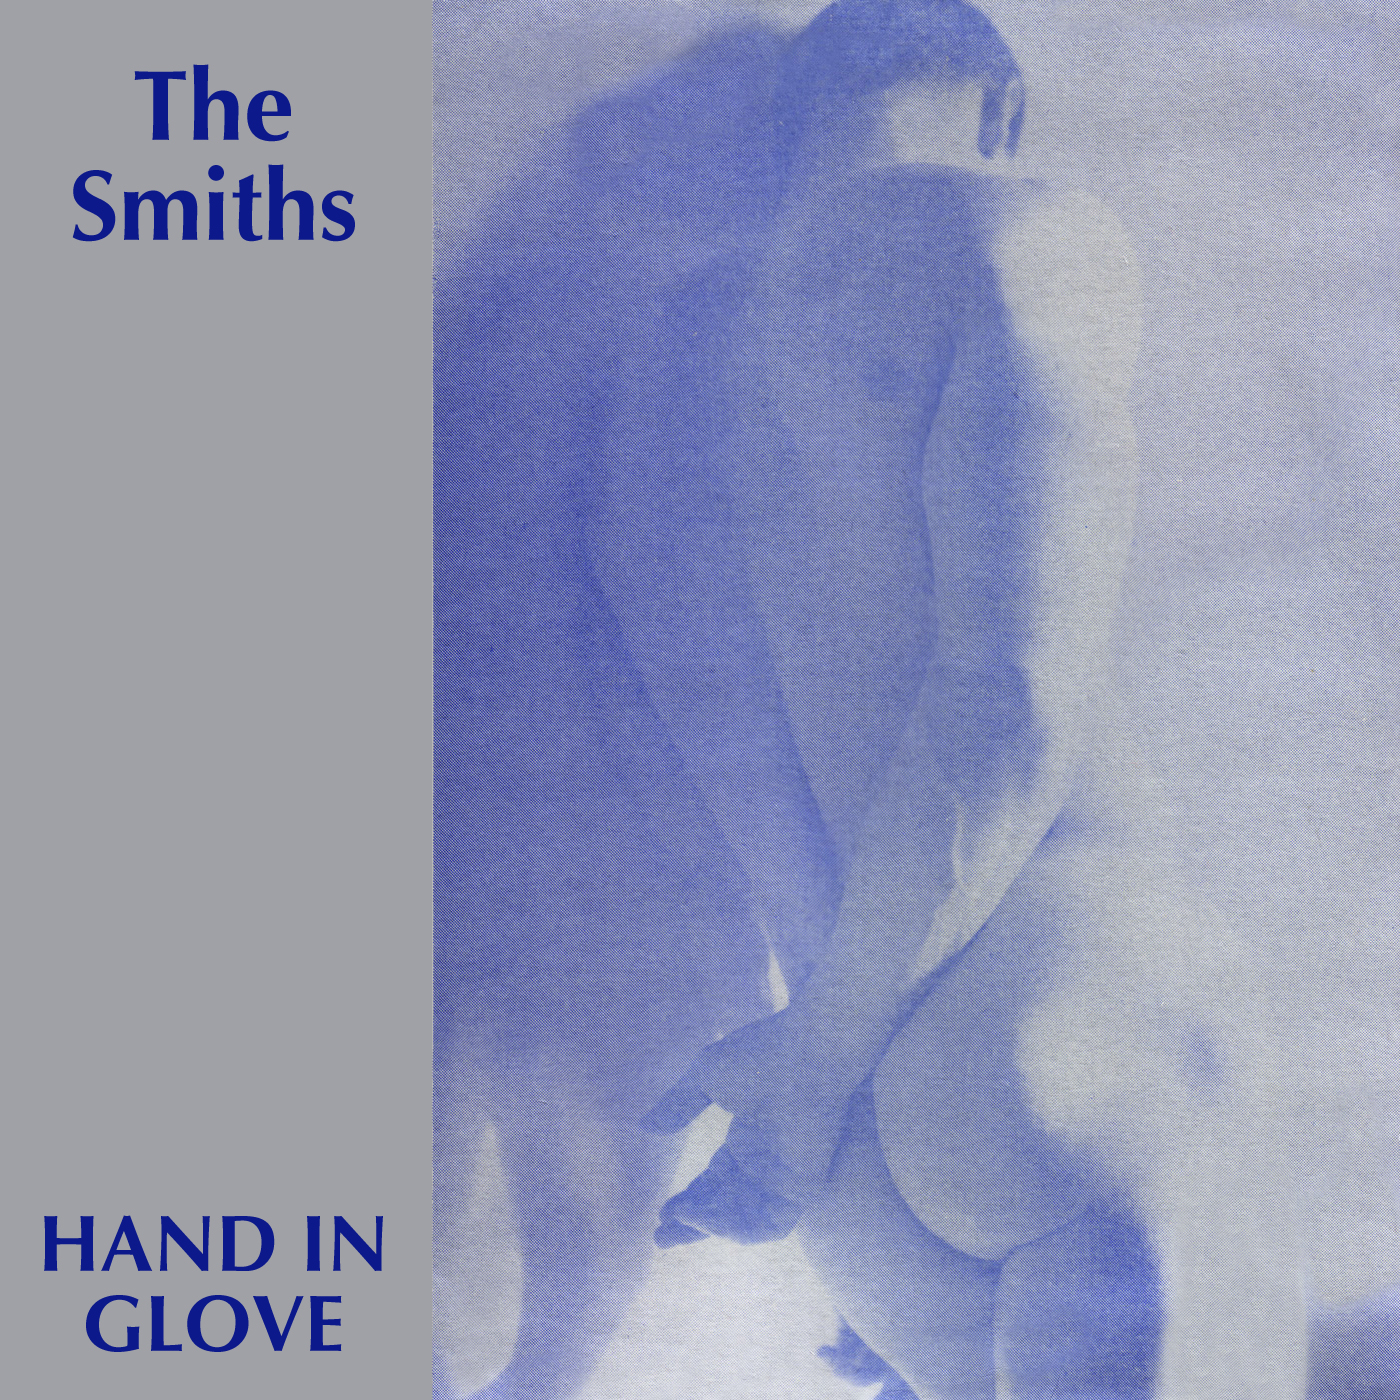 The Smiths 'Extra Track (and a tacky badge)' MP3 blog launches with 'Hand in Glove'